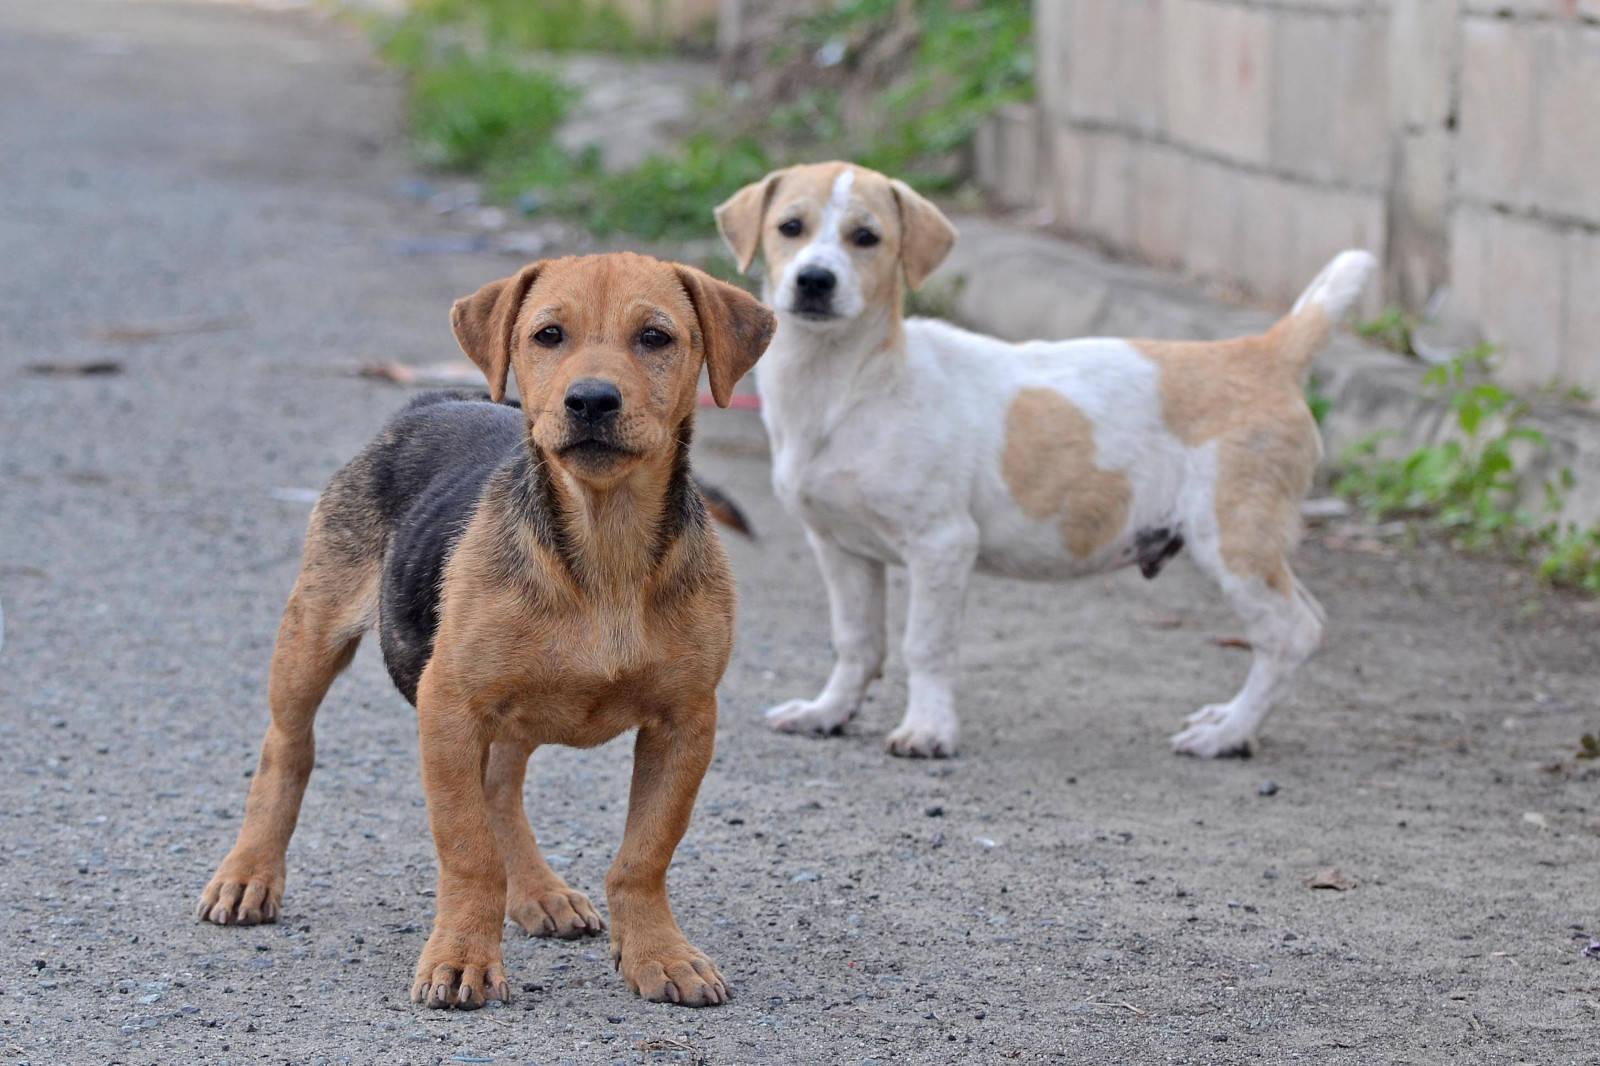 After Sochi Cull, How Do We Resolve the World's Stray Dog Problem?